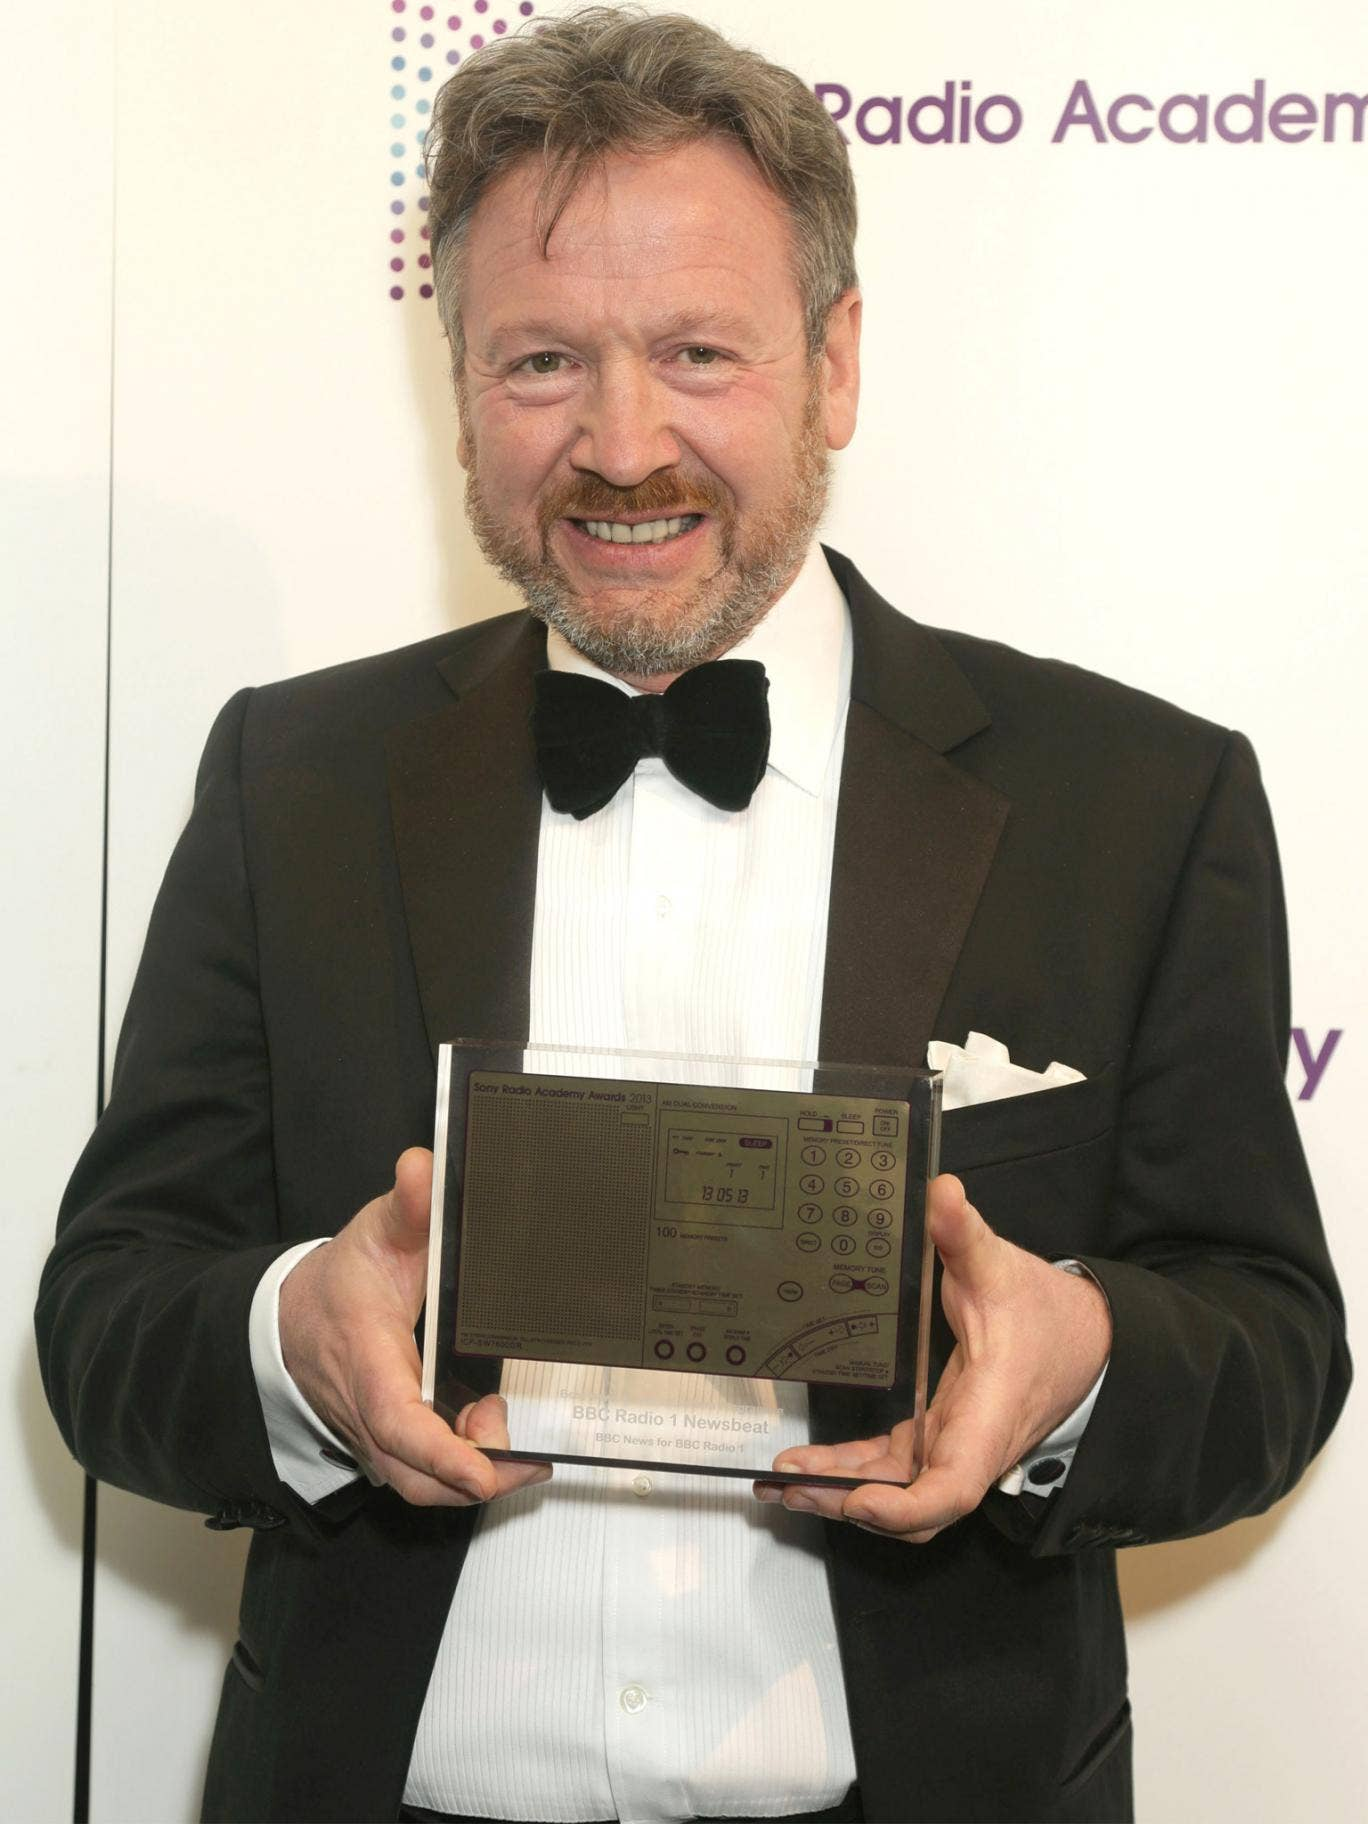 Rod McKenzie won a Best News and Current Affairs Programme Award for 'Newsbeat' at the Sony Radio Academy Awards